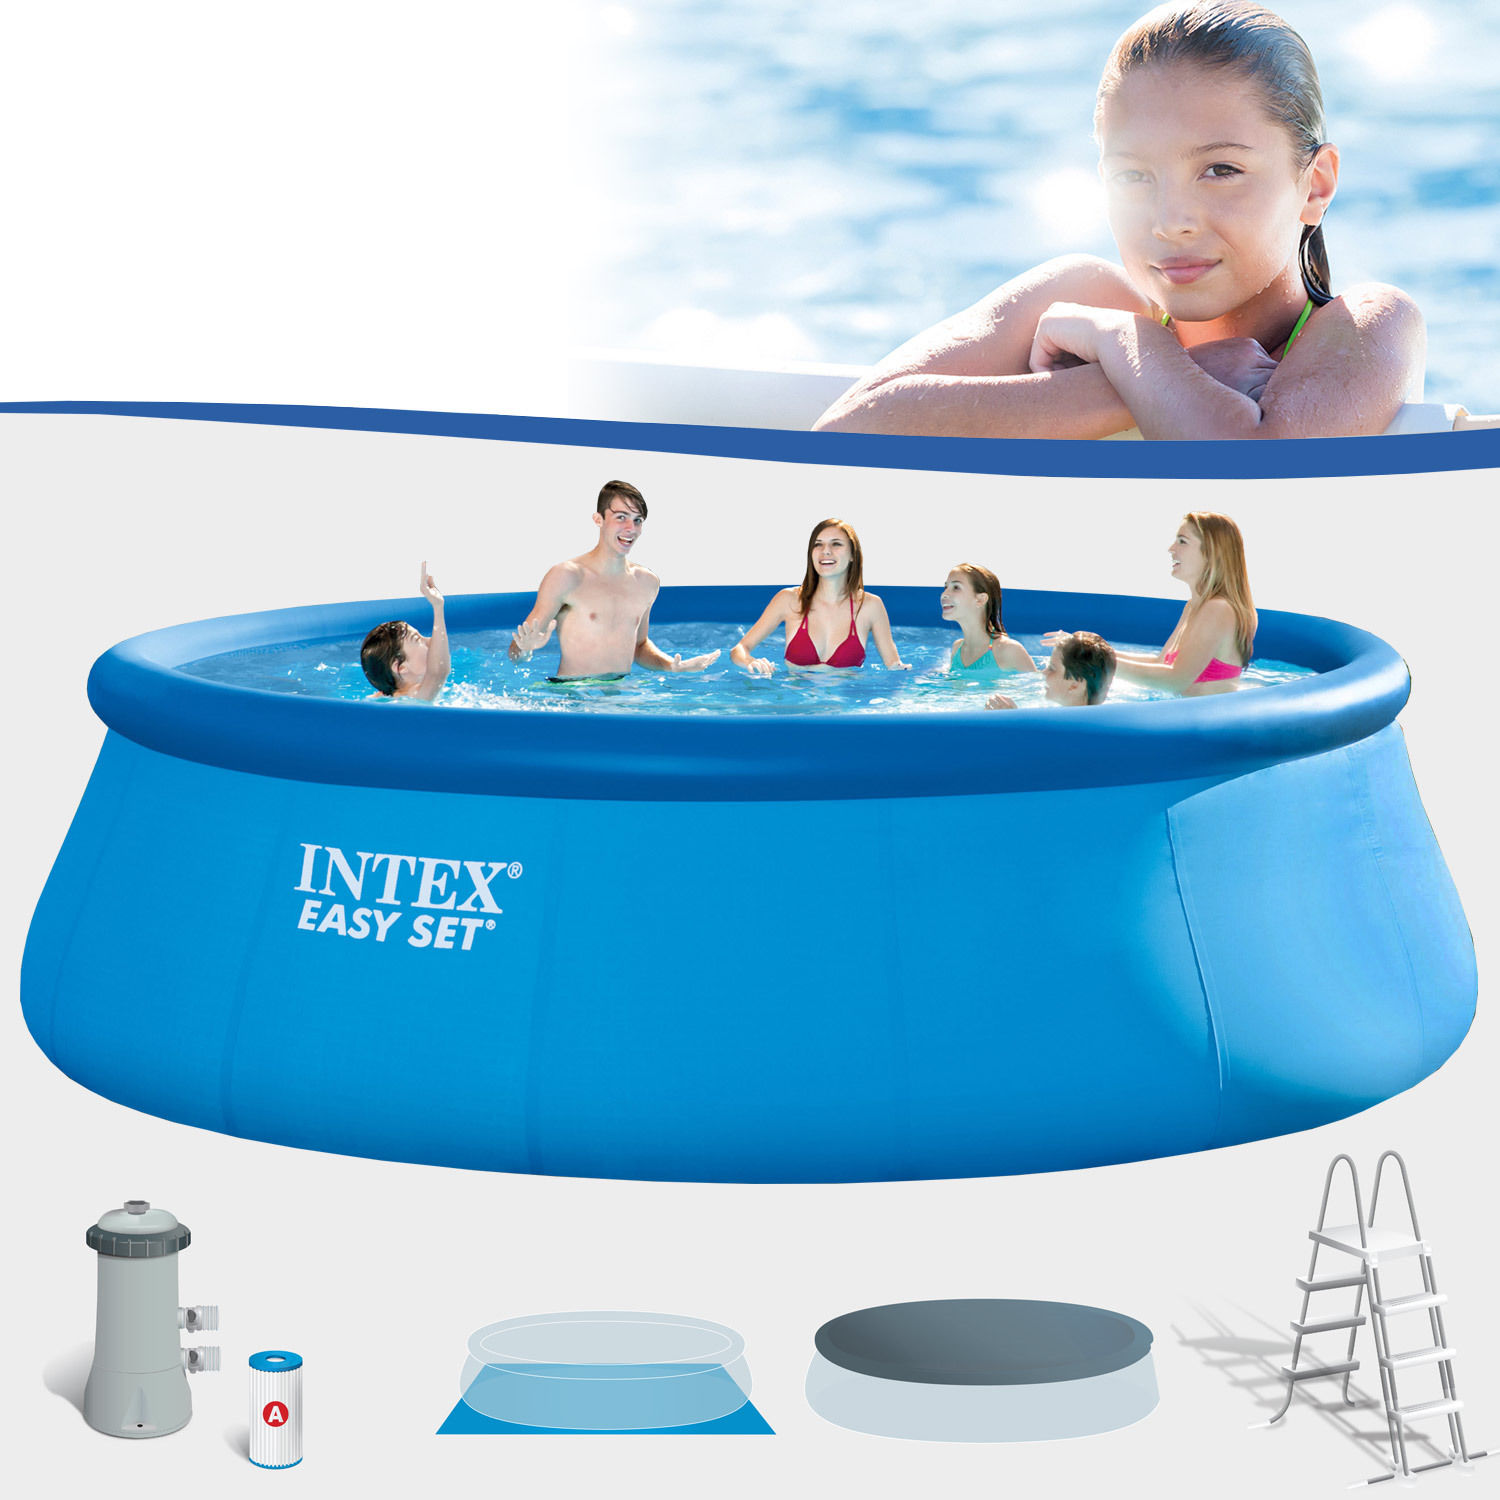 Piscina Intex Rotonda Piscina Gonfiabile Intex 28168 26168 Easy Rotonda 43 Pompa